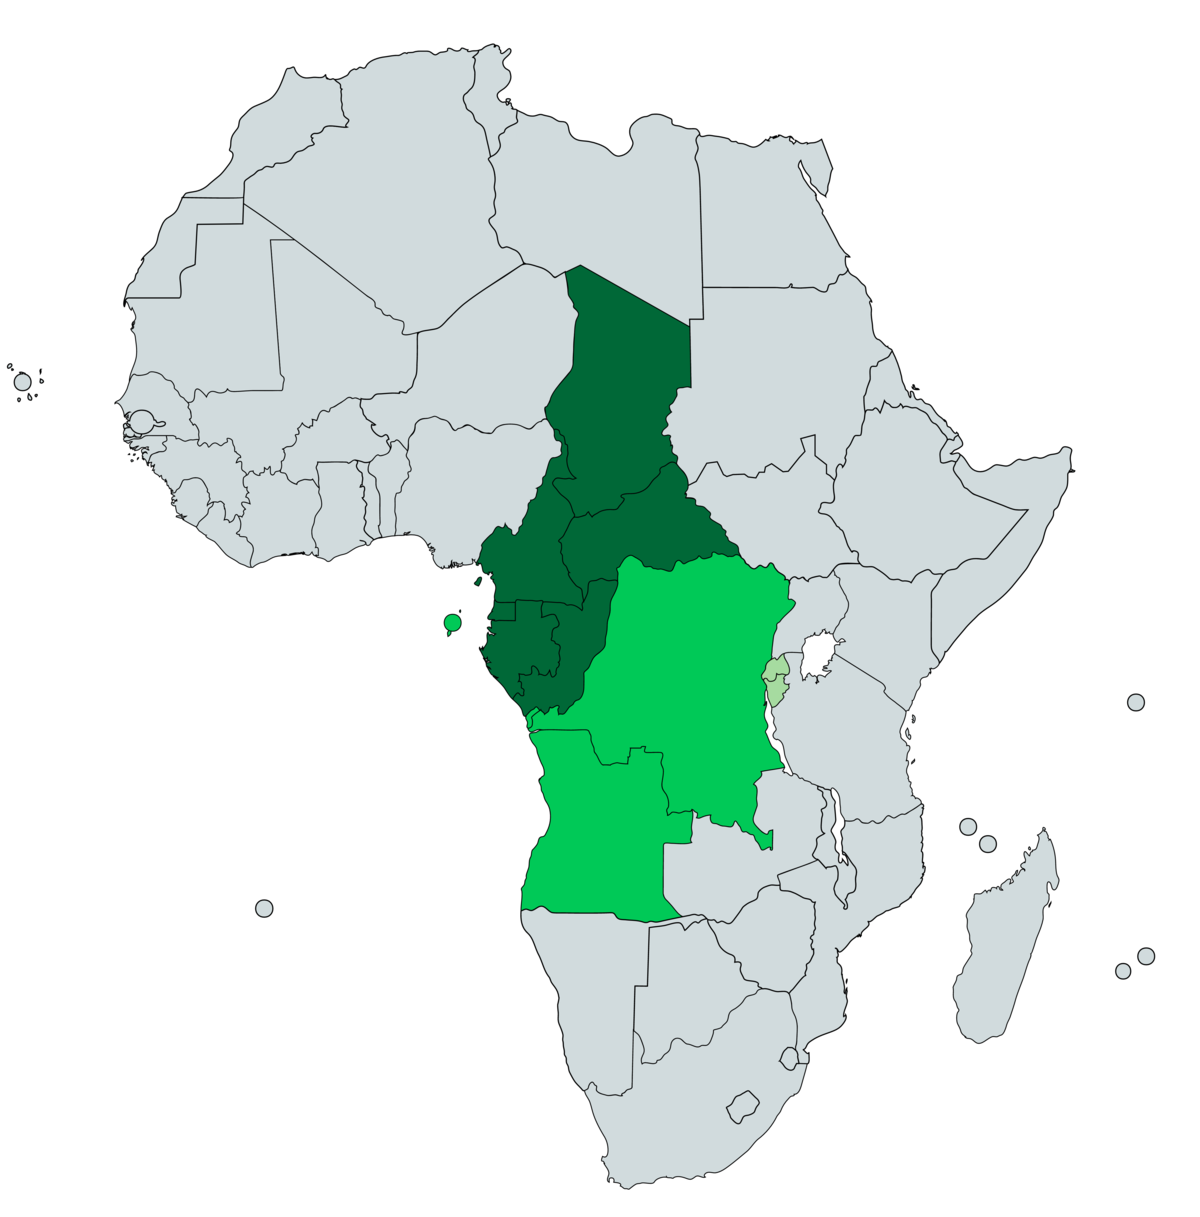 Central Africa - Wikipedia on countries of africa, blank map of ireland, blank map central america, blank map of world, blank map of the balkan peninsula, large map africa, blank map of each continent, blank europe map, european imperialism in africa, blank map of the eastern mediterranean, blank map of americas, women of africa, capital of africa, blank map of mediterranean region, blank map of oceania, blank asia map, blank map of the middle east, blank map of arizona, geographic features of africa,